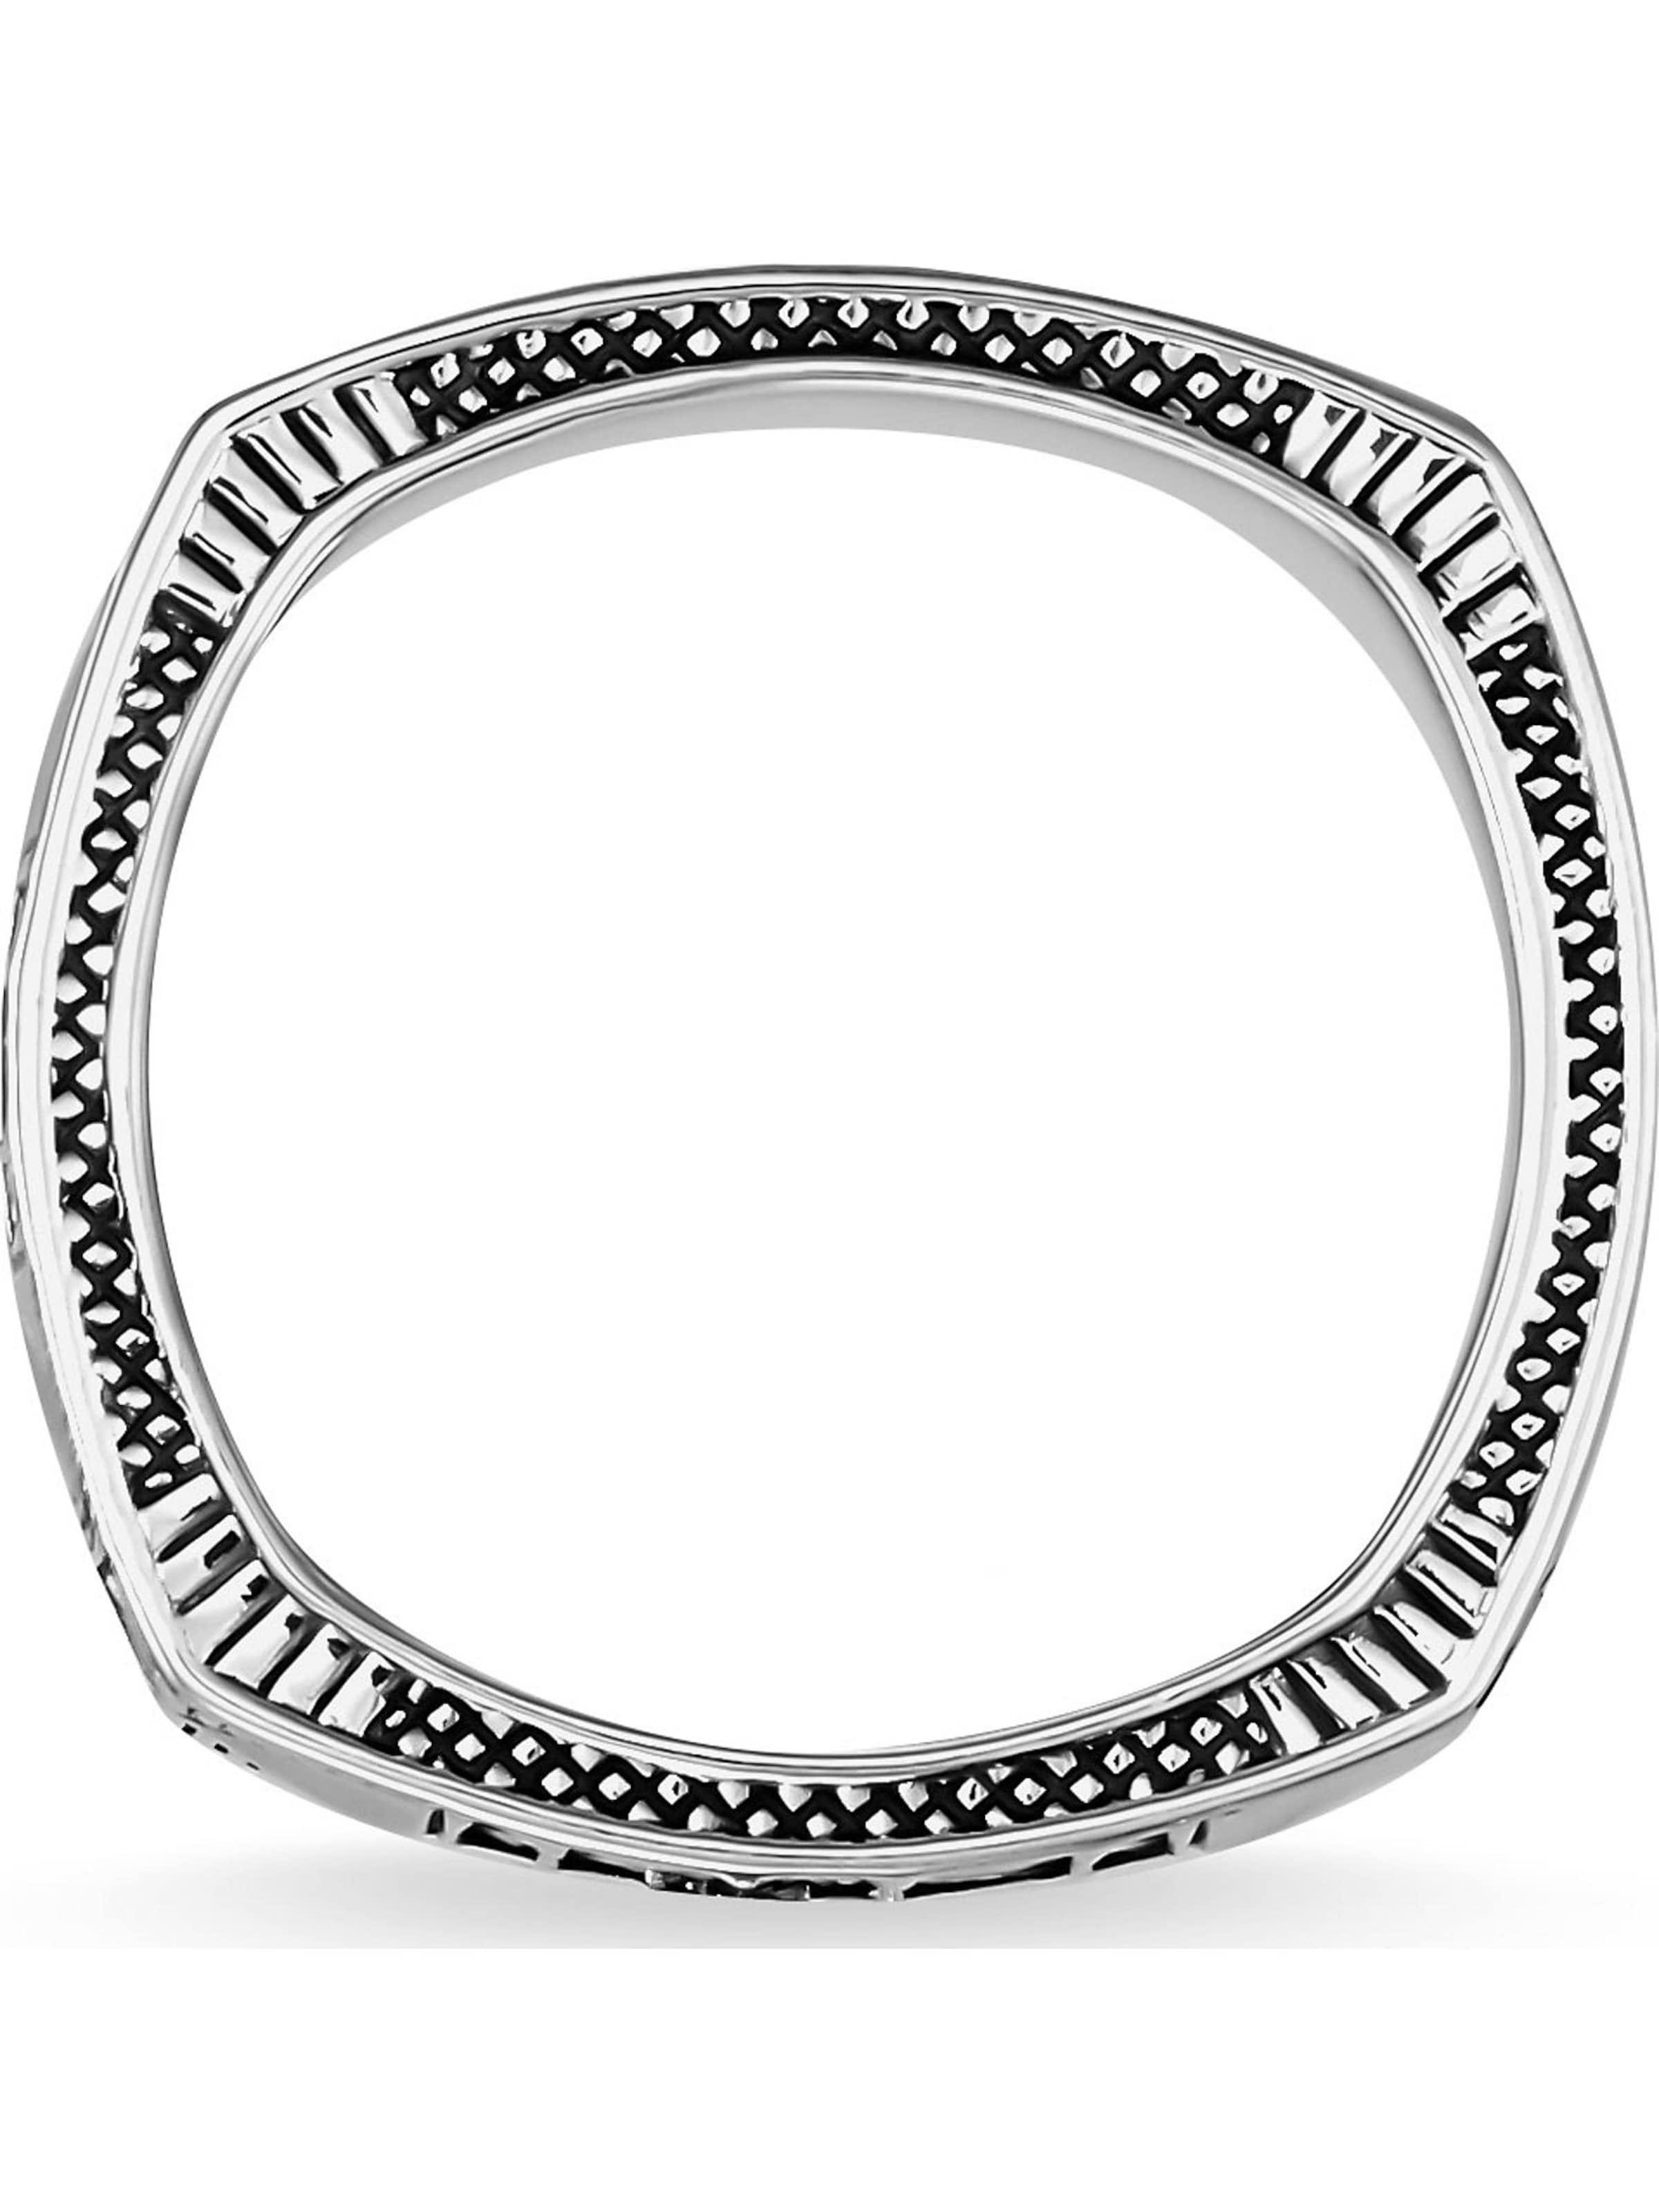 Sabo Silber Sabo Ring In Sabo Silber Thomas Thomas In Ring Ring Thomas kZuPOTXi